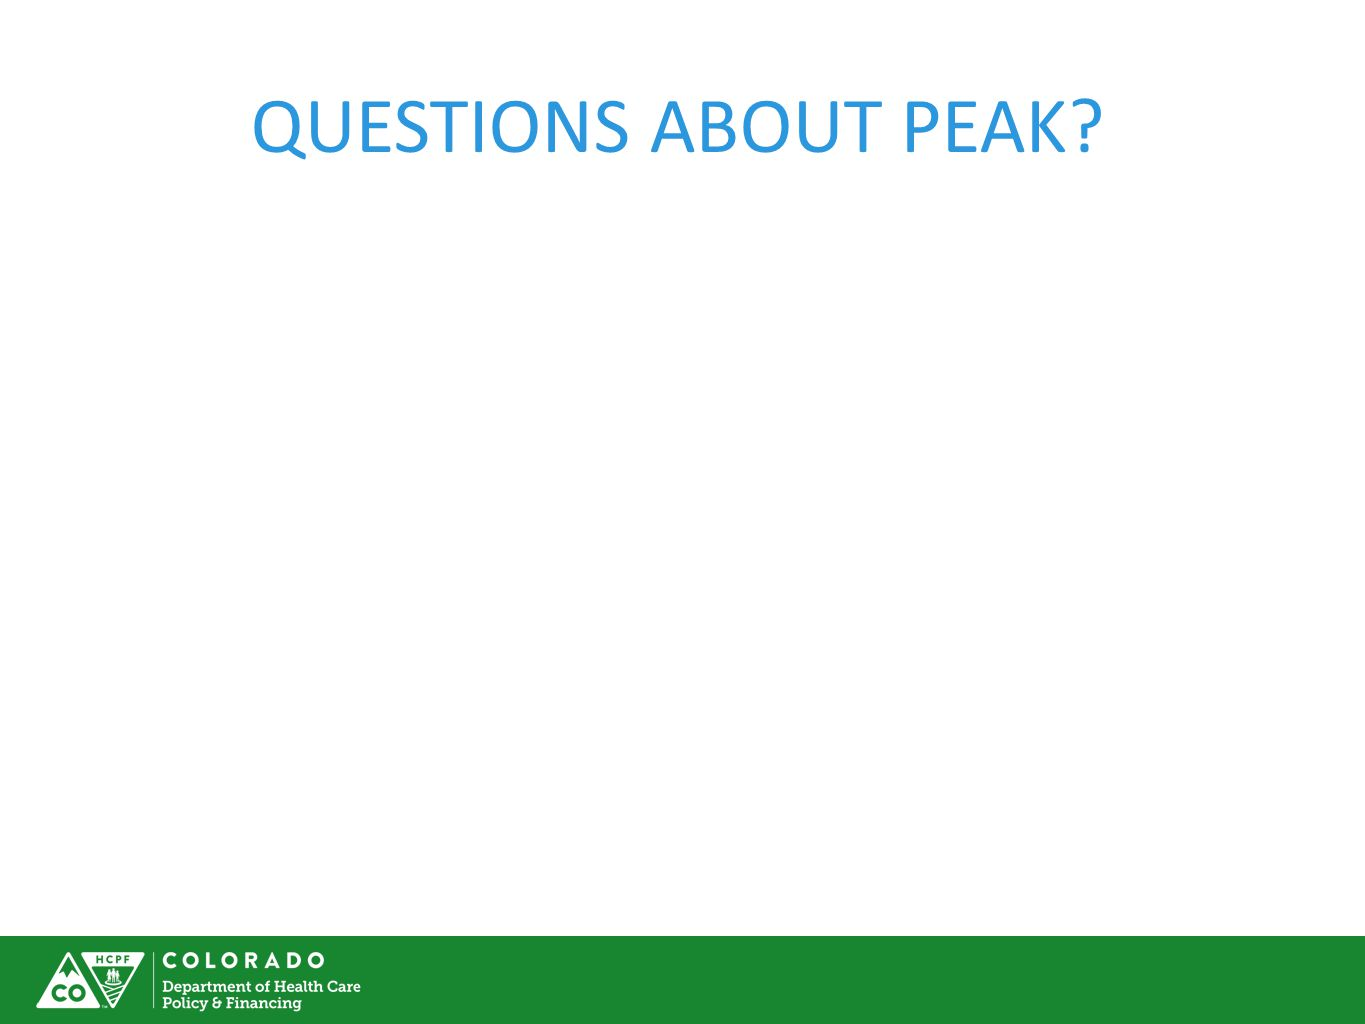 QUESTIONS ABOUT PEAK